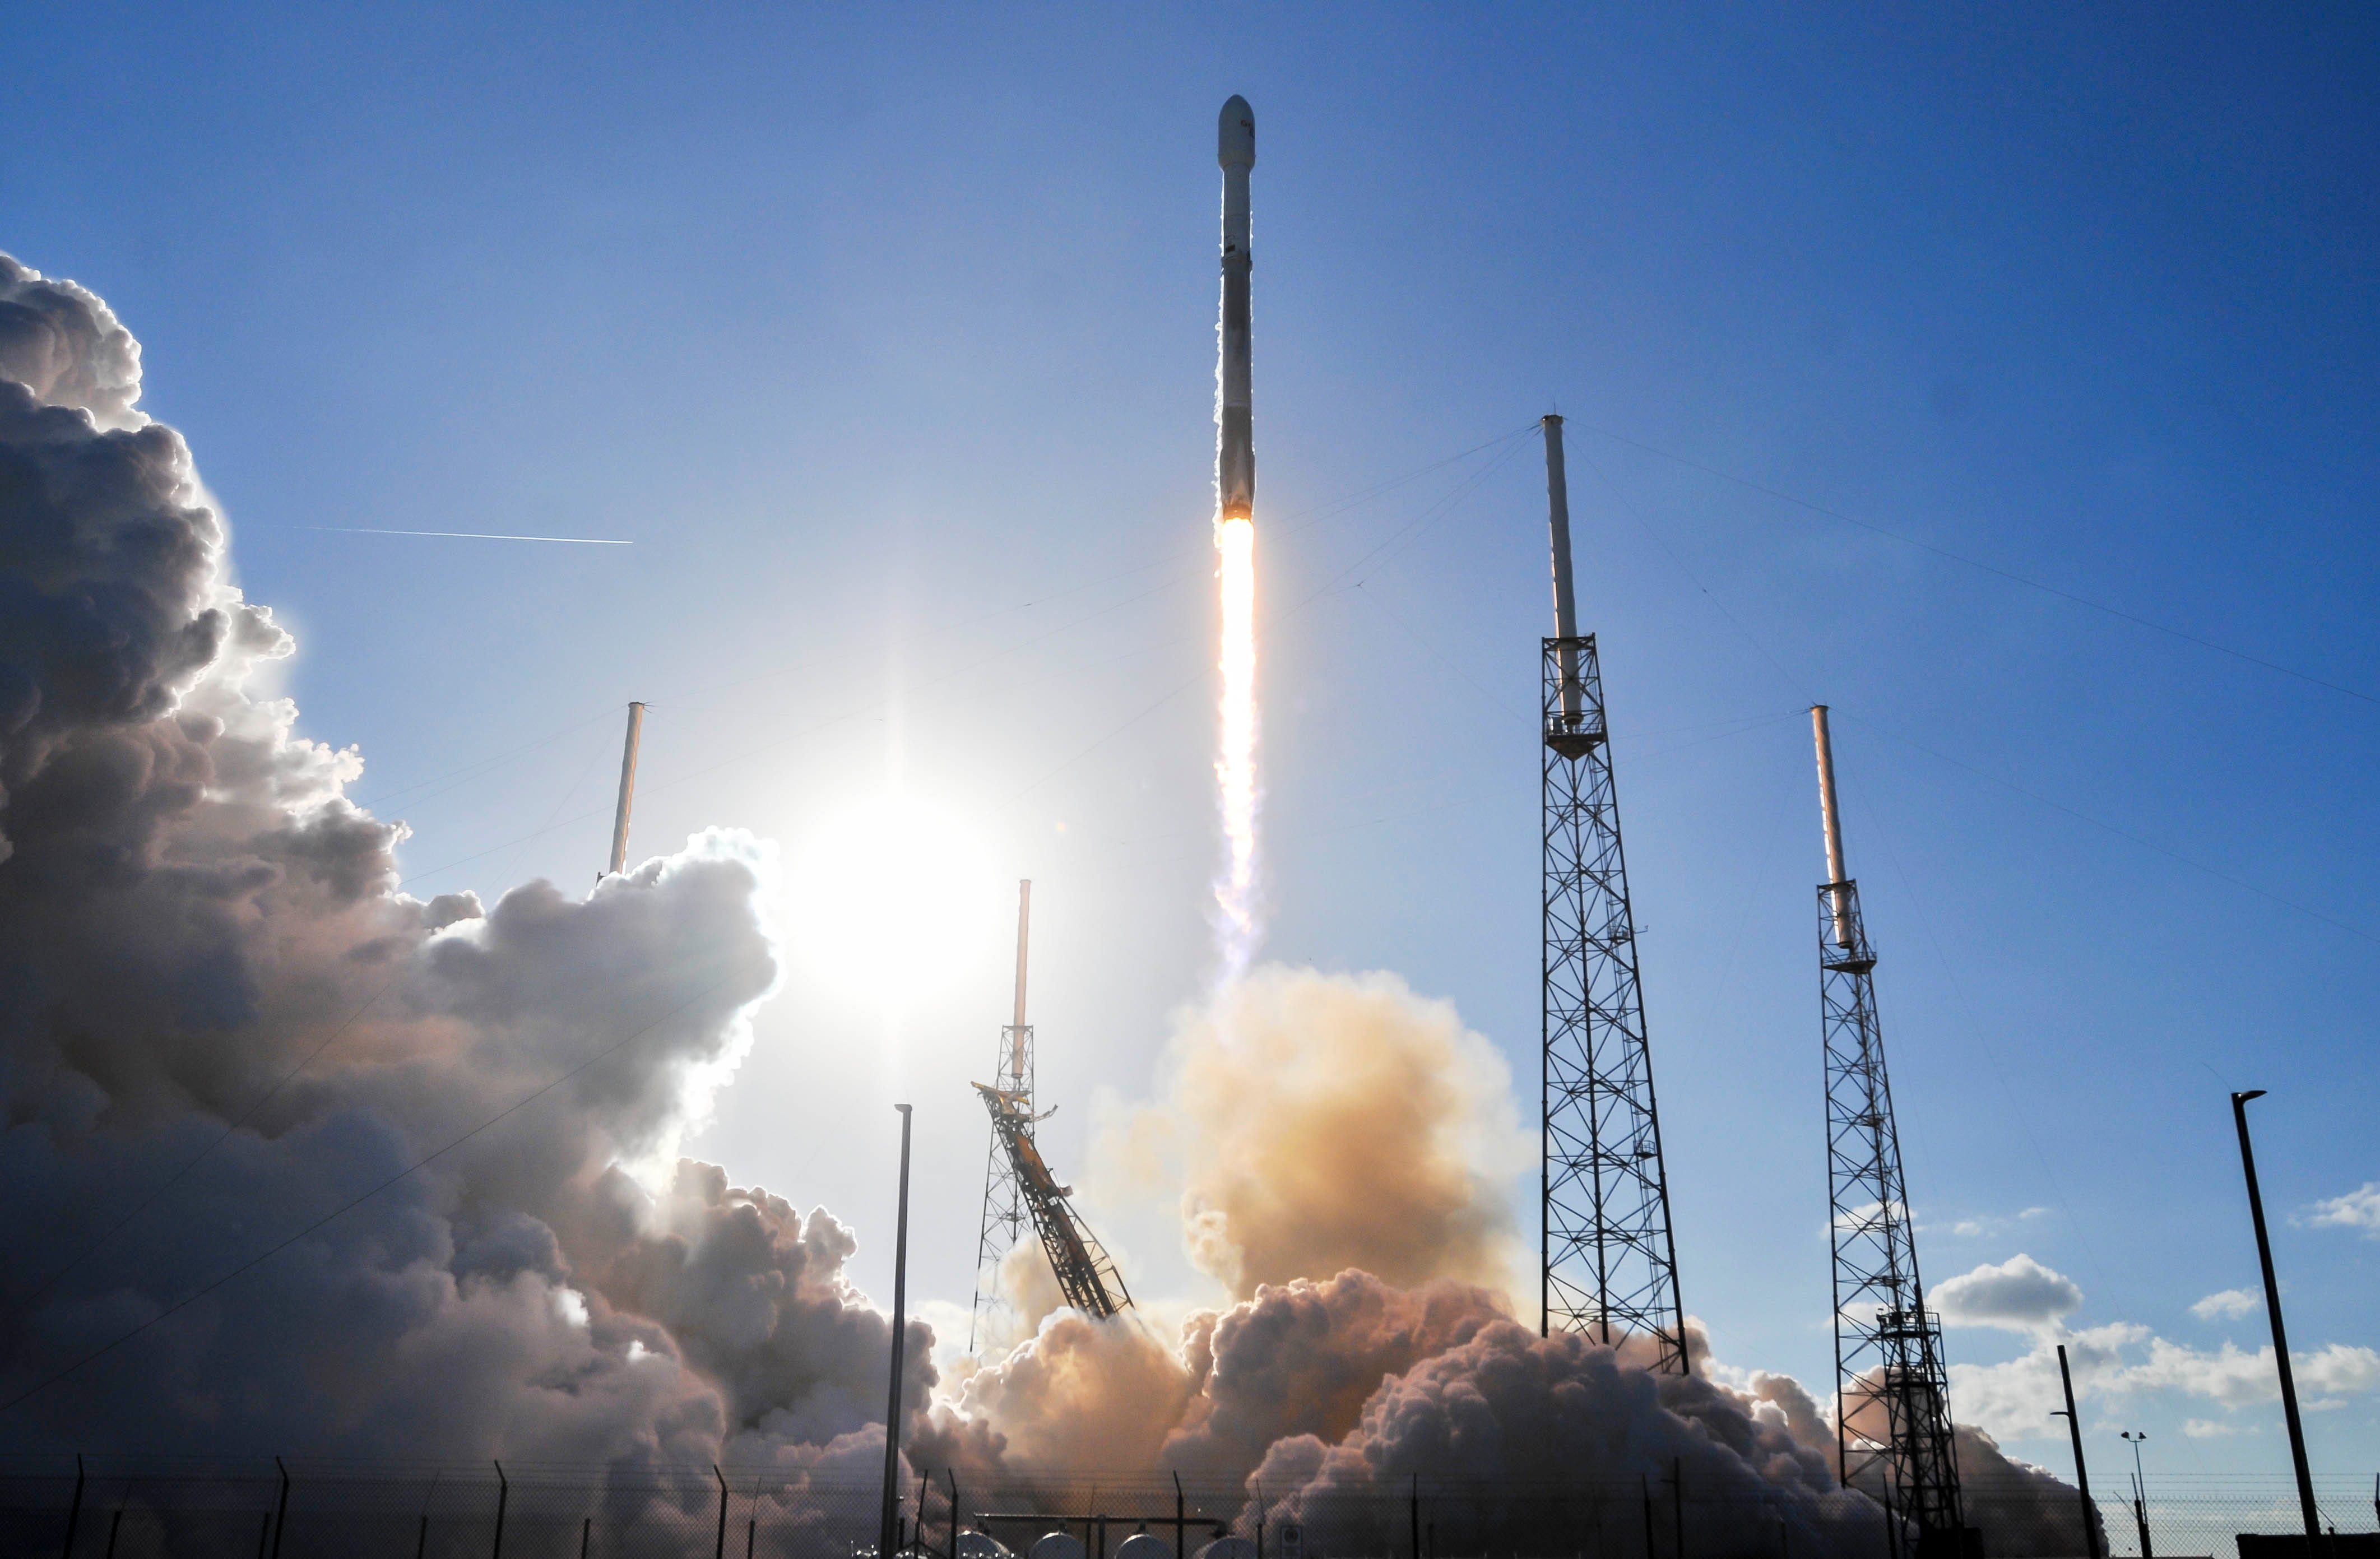 636530349005708278-crb013118-spacex-14- SpaceX will host next Cape Canaveral launch this month with Falcon 9